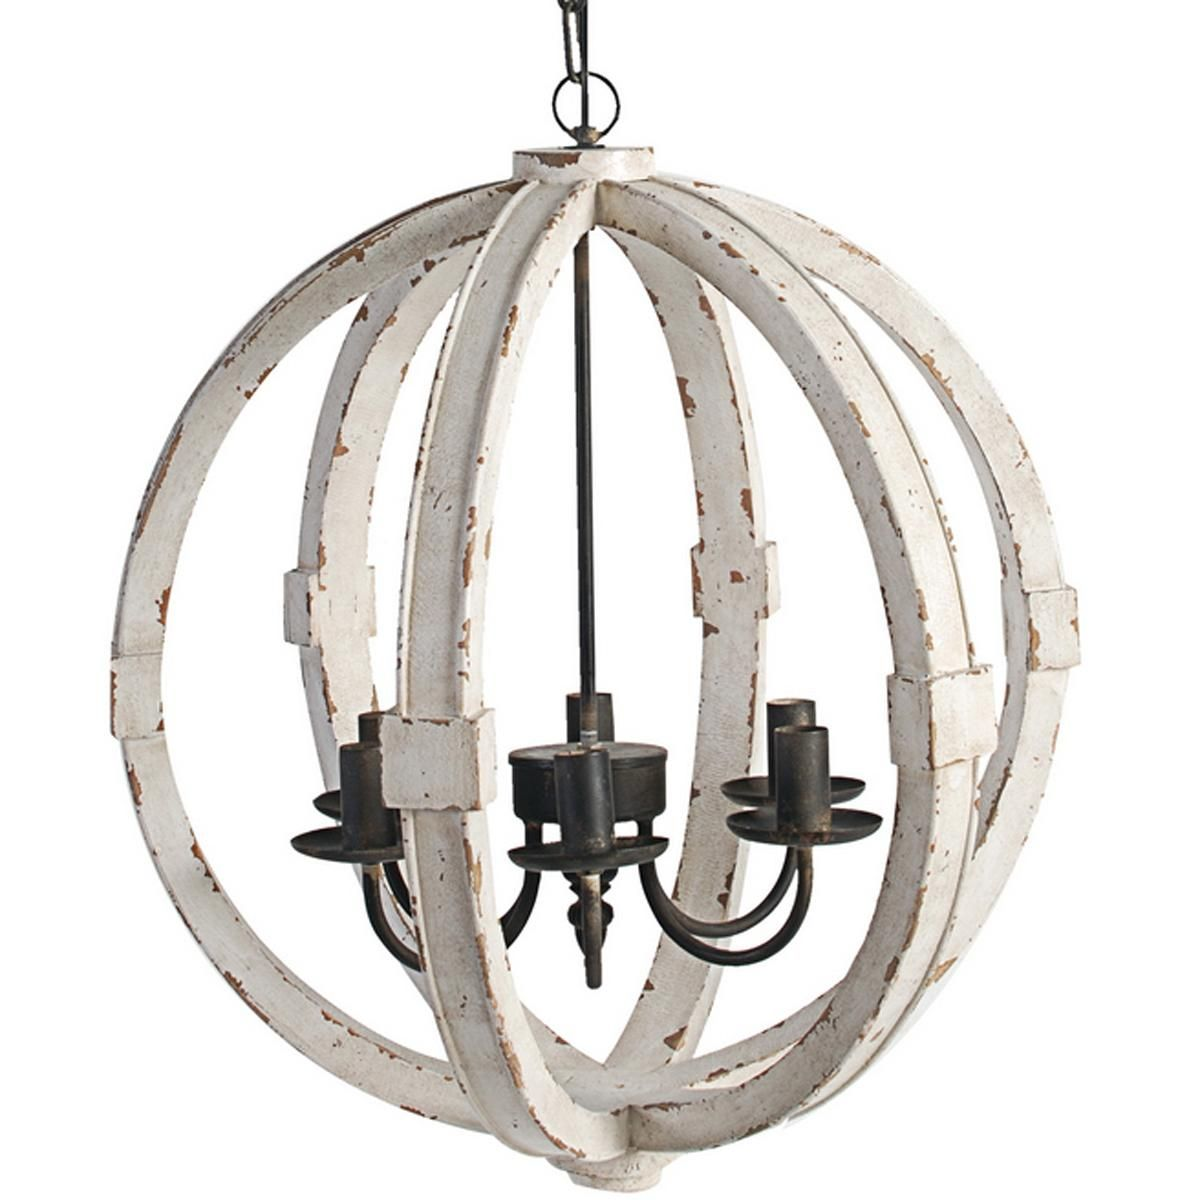 Distressed Wood Sphere Chandelier | Dining Room ...